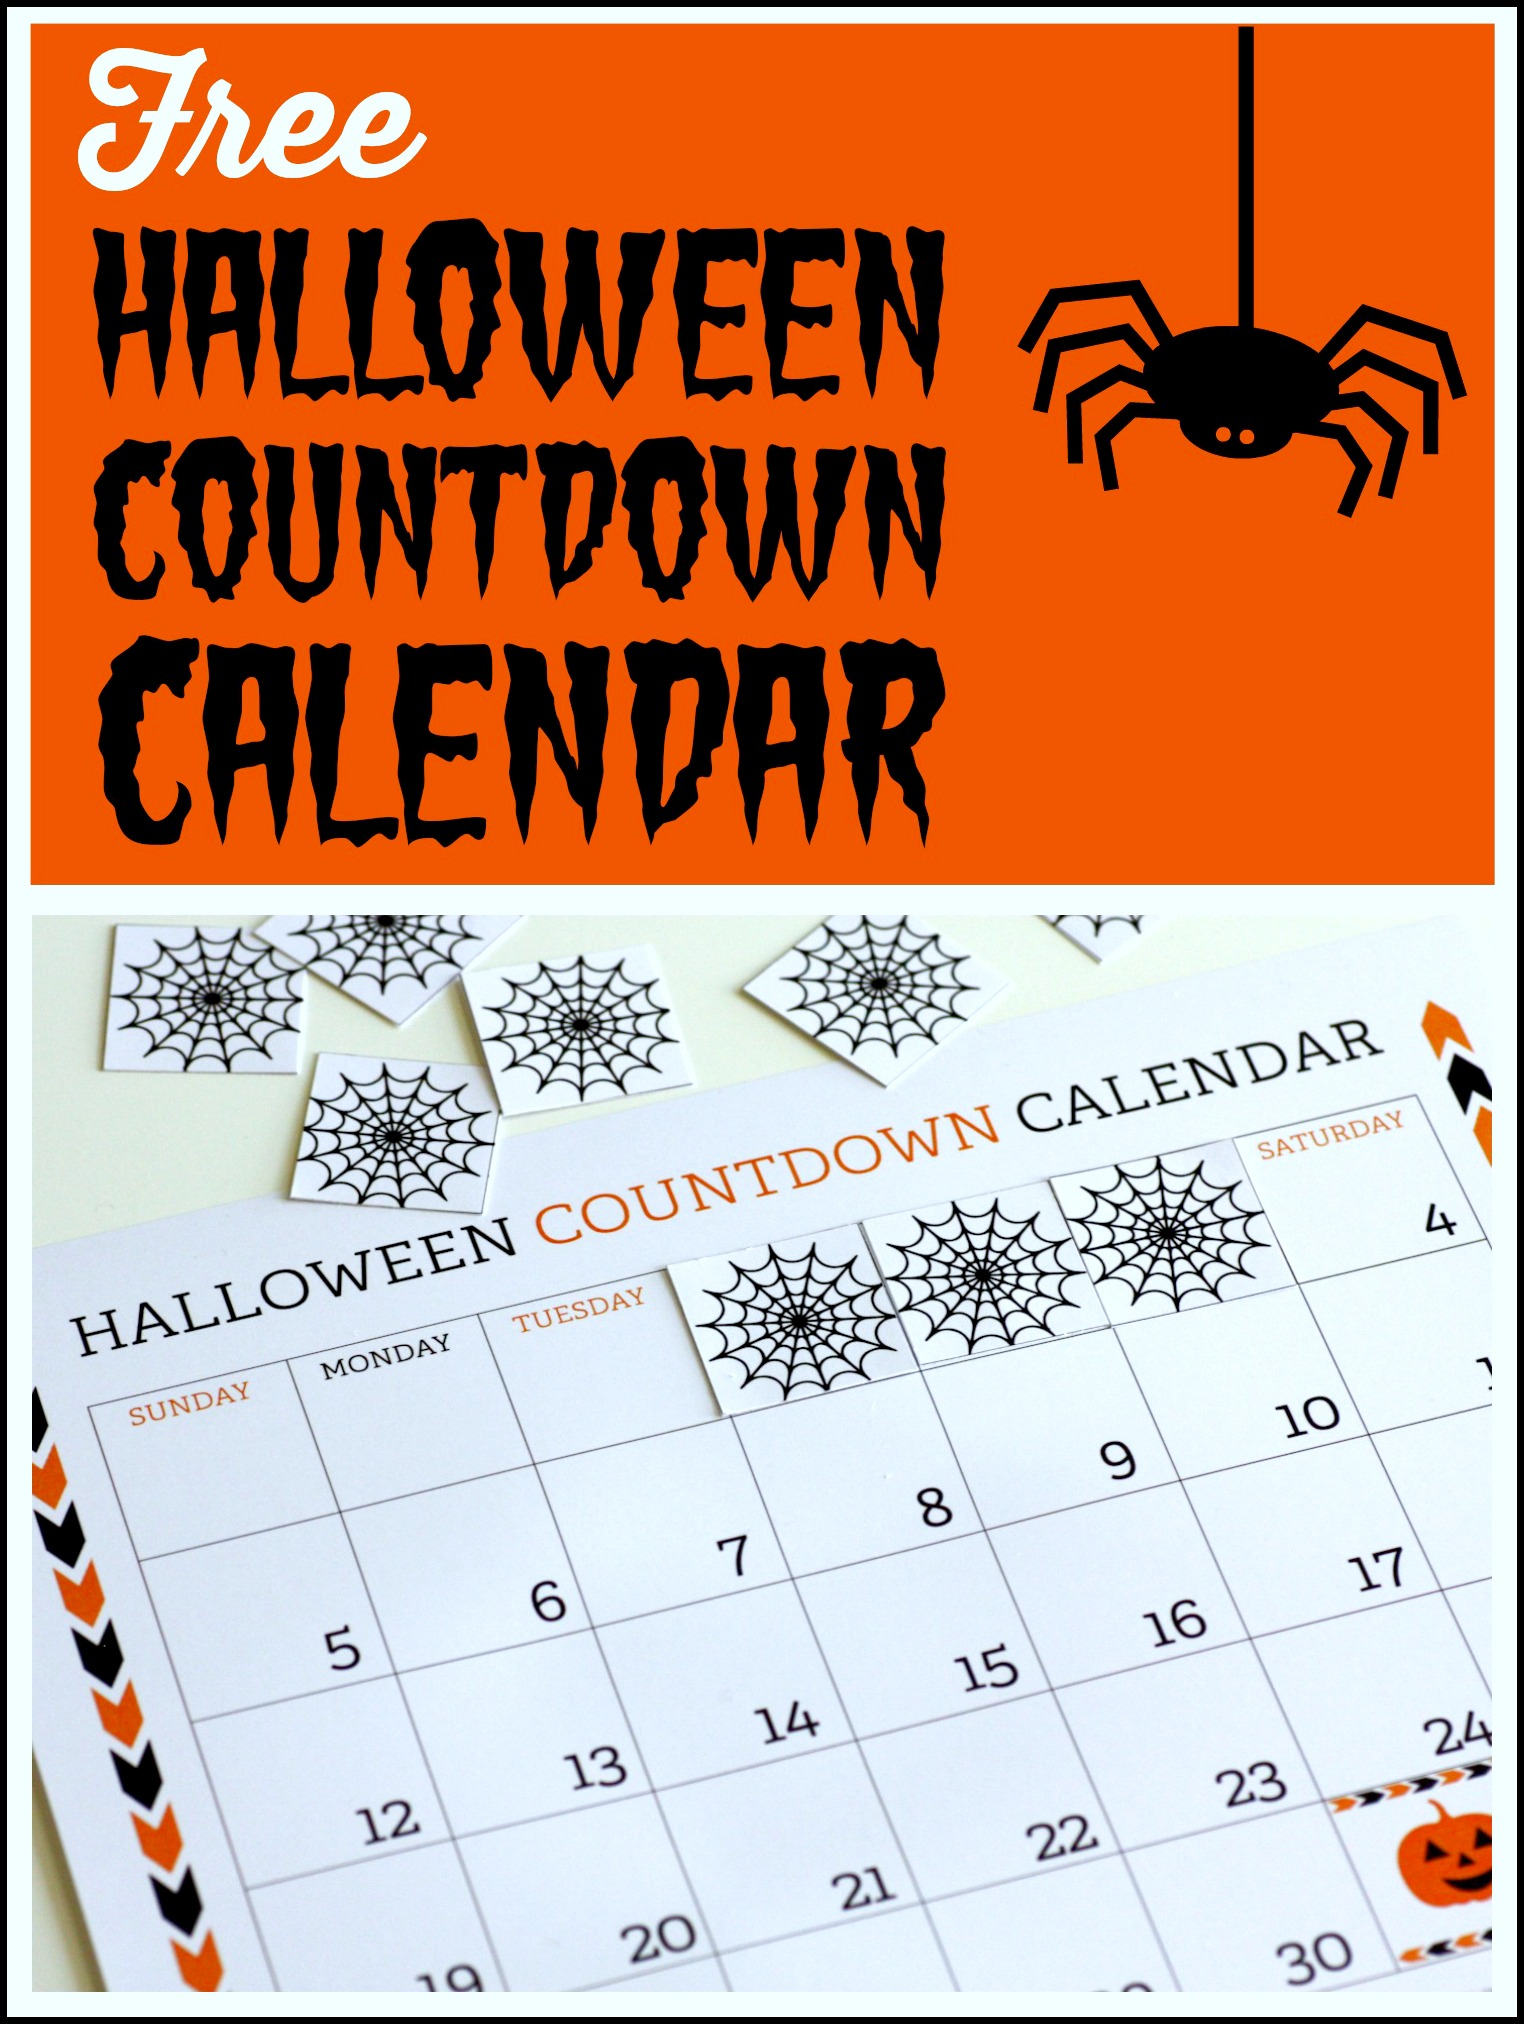 Printable Countdown Calendar That Are Sweet   Dora's Website intended for Make A Countdown Calendar Printable